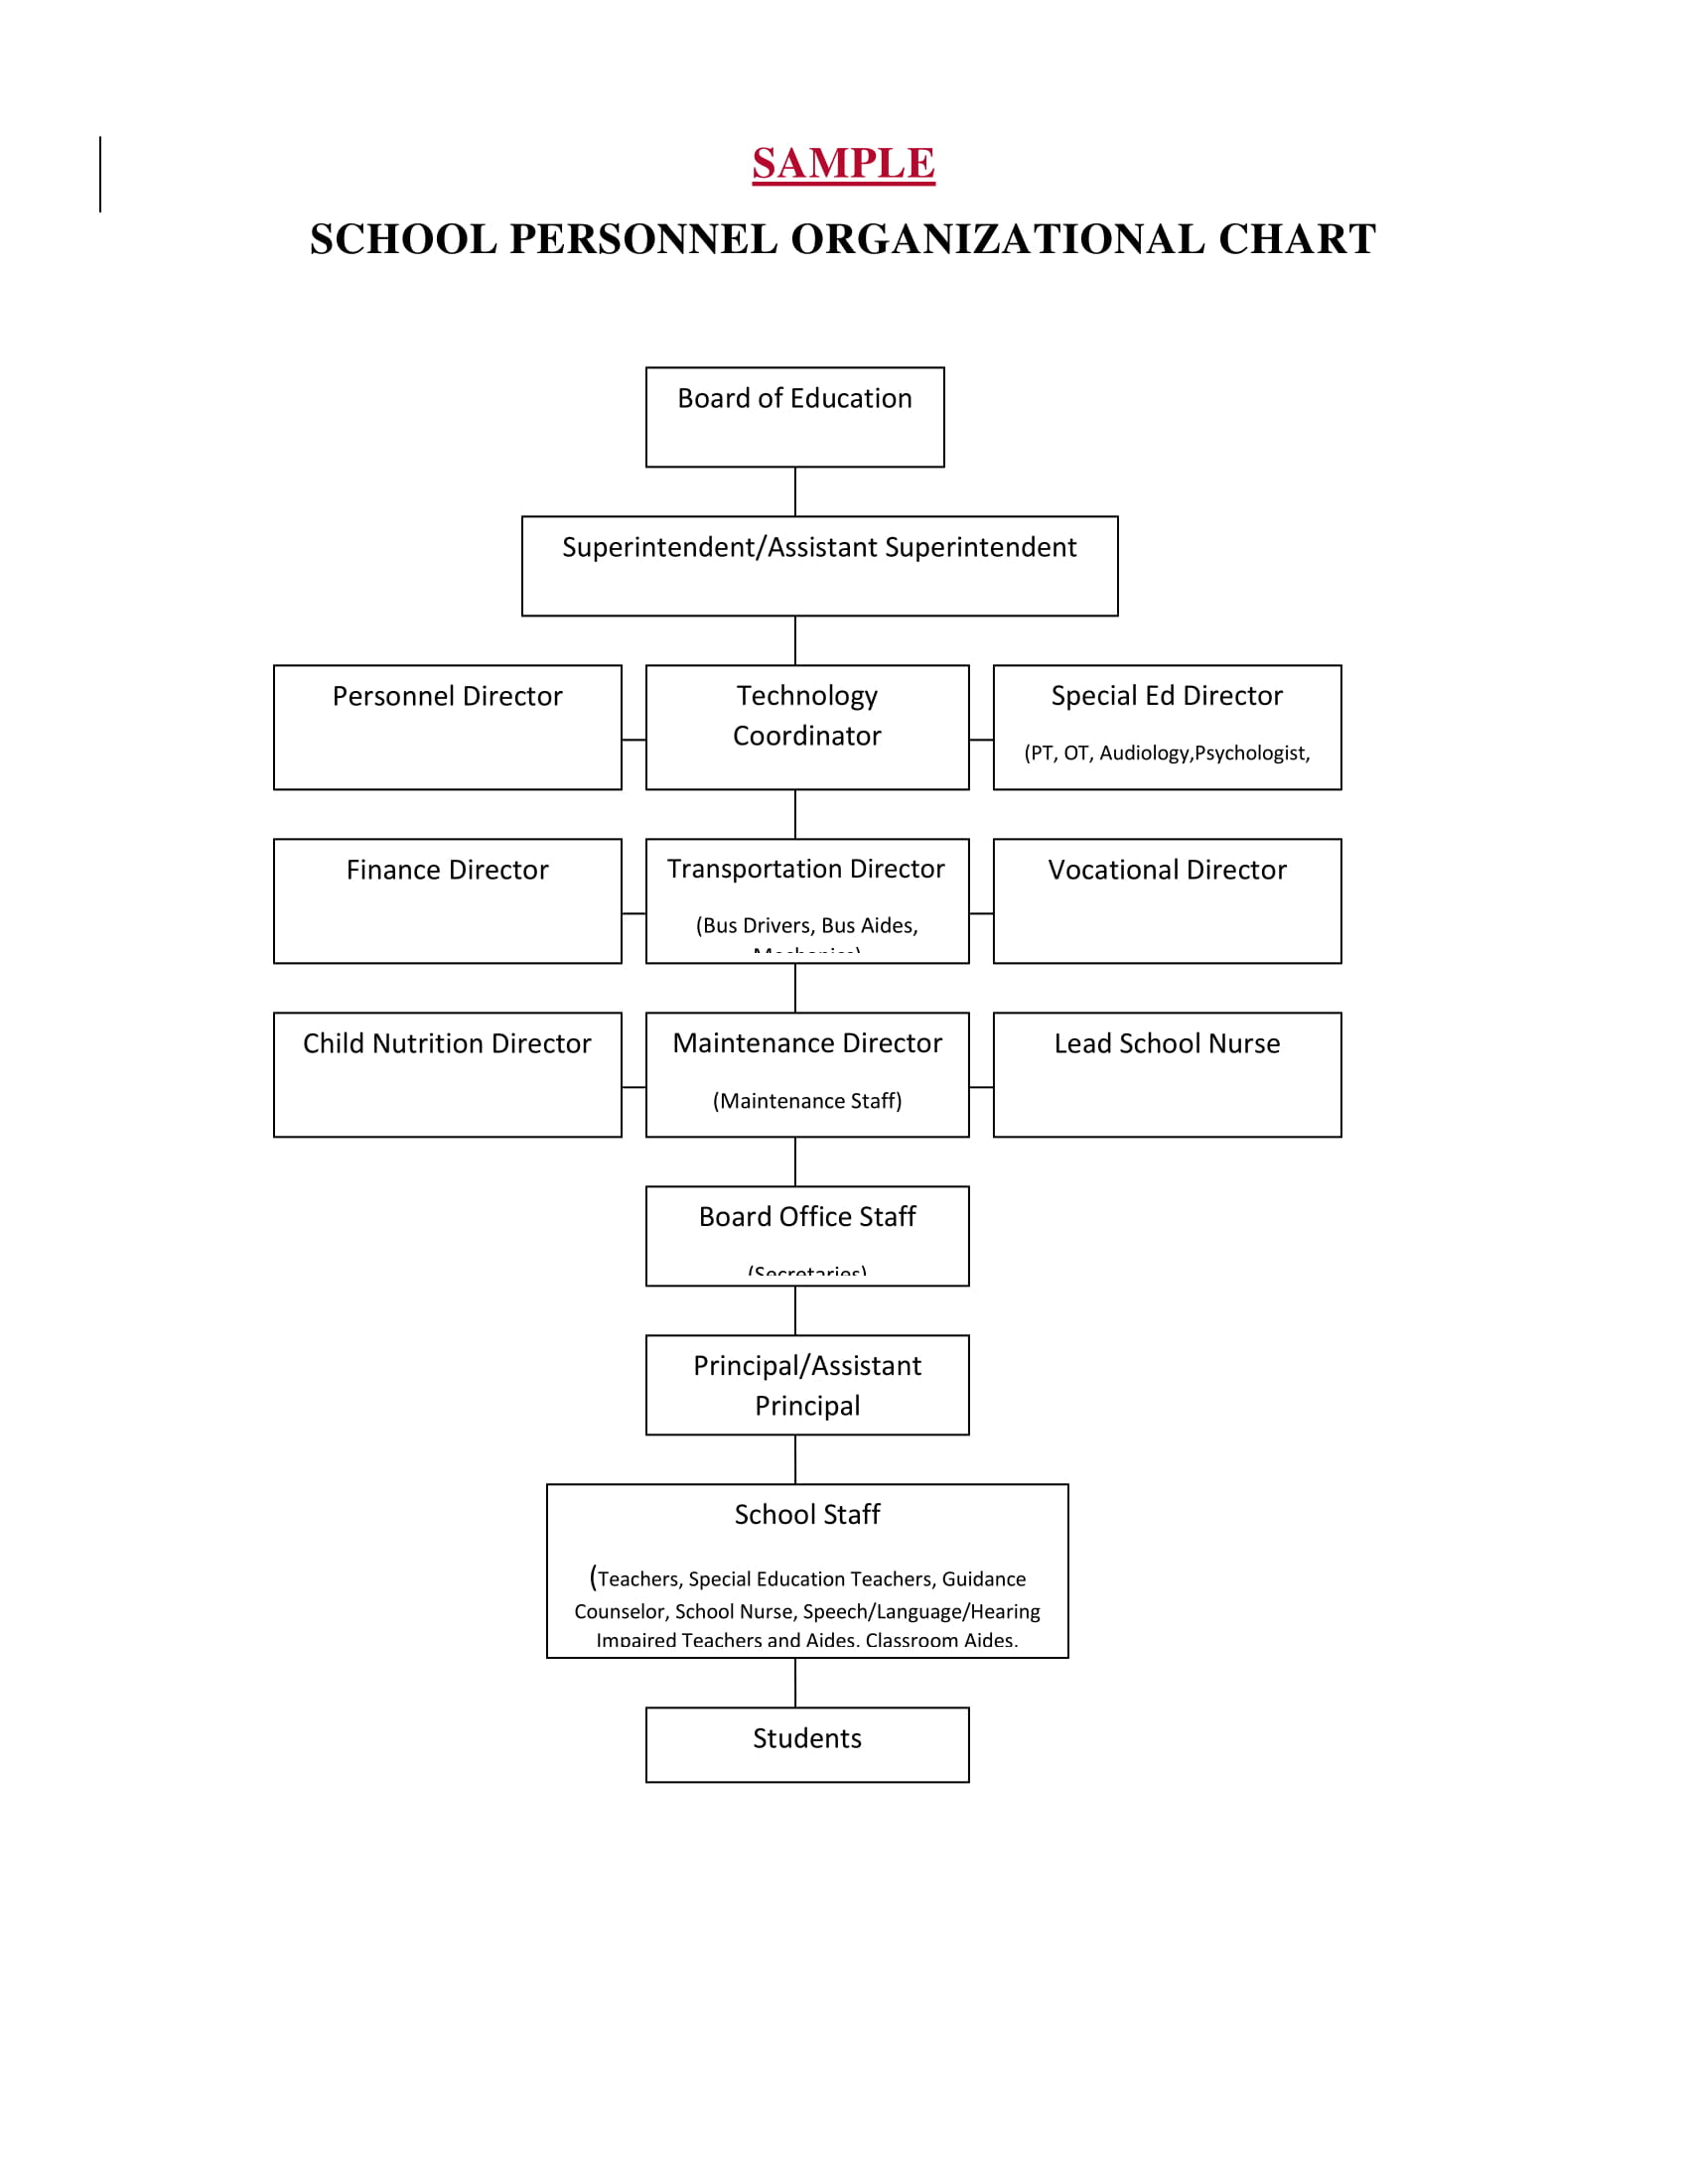 free school personnel organizational chart example